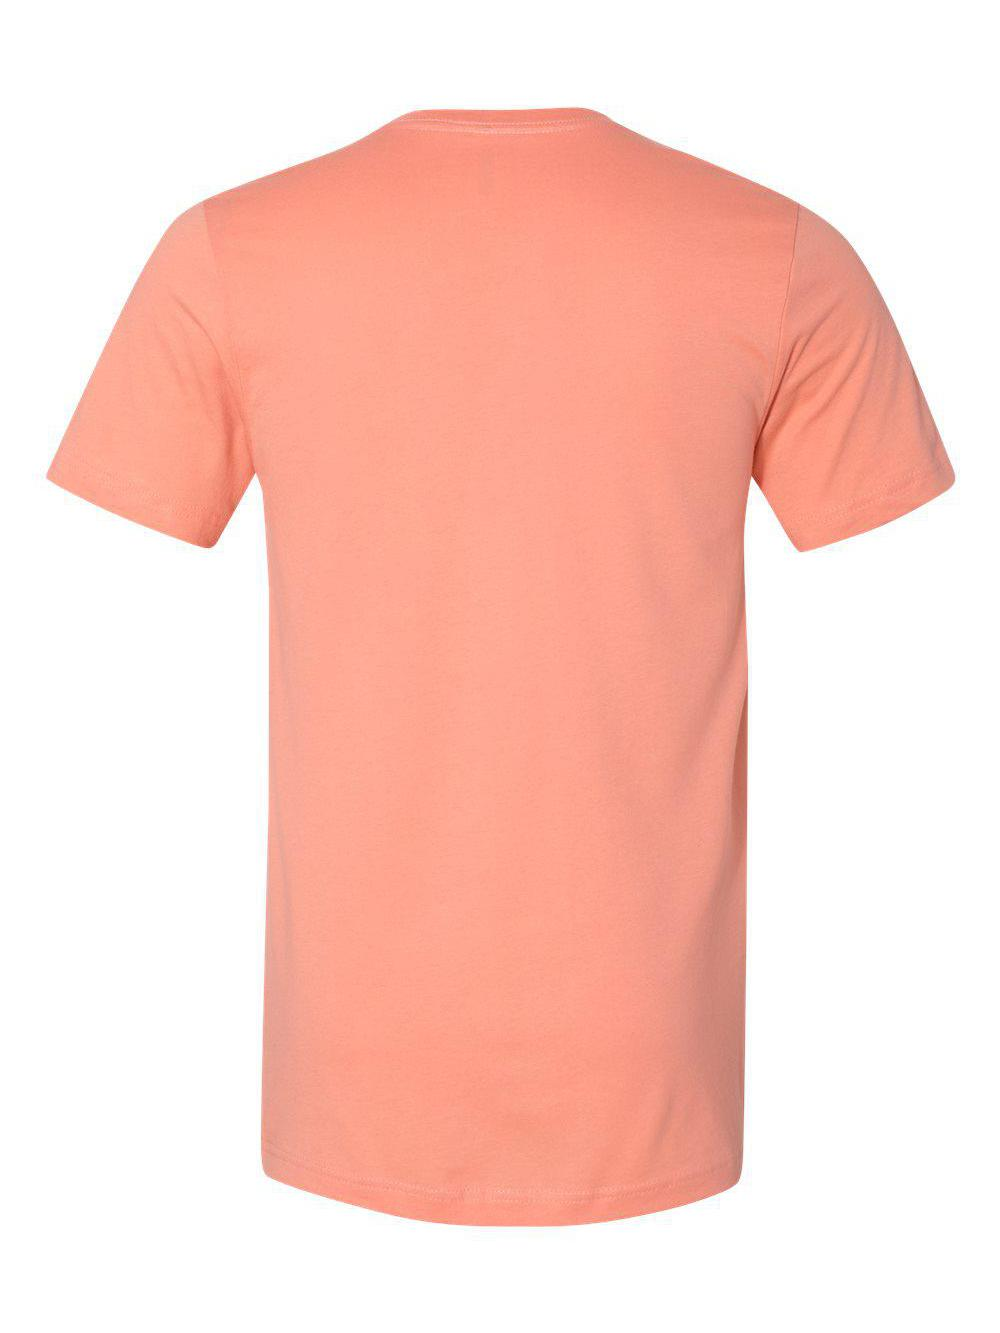 Bella-Canvas-Unisex-Short-Sleeve-Jersey-Tee-3001 thumbnail 127